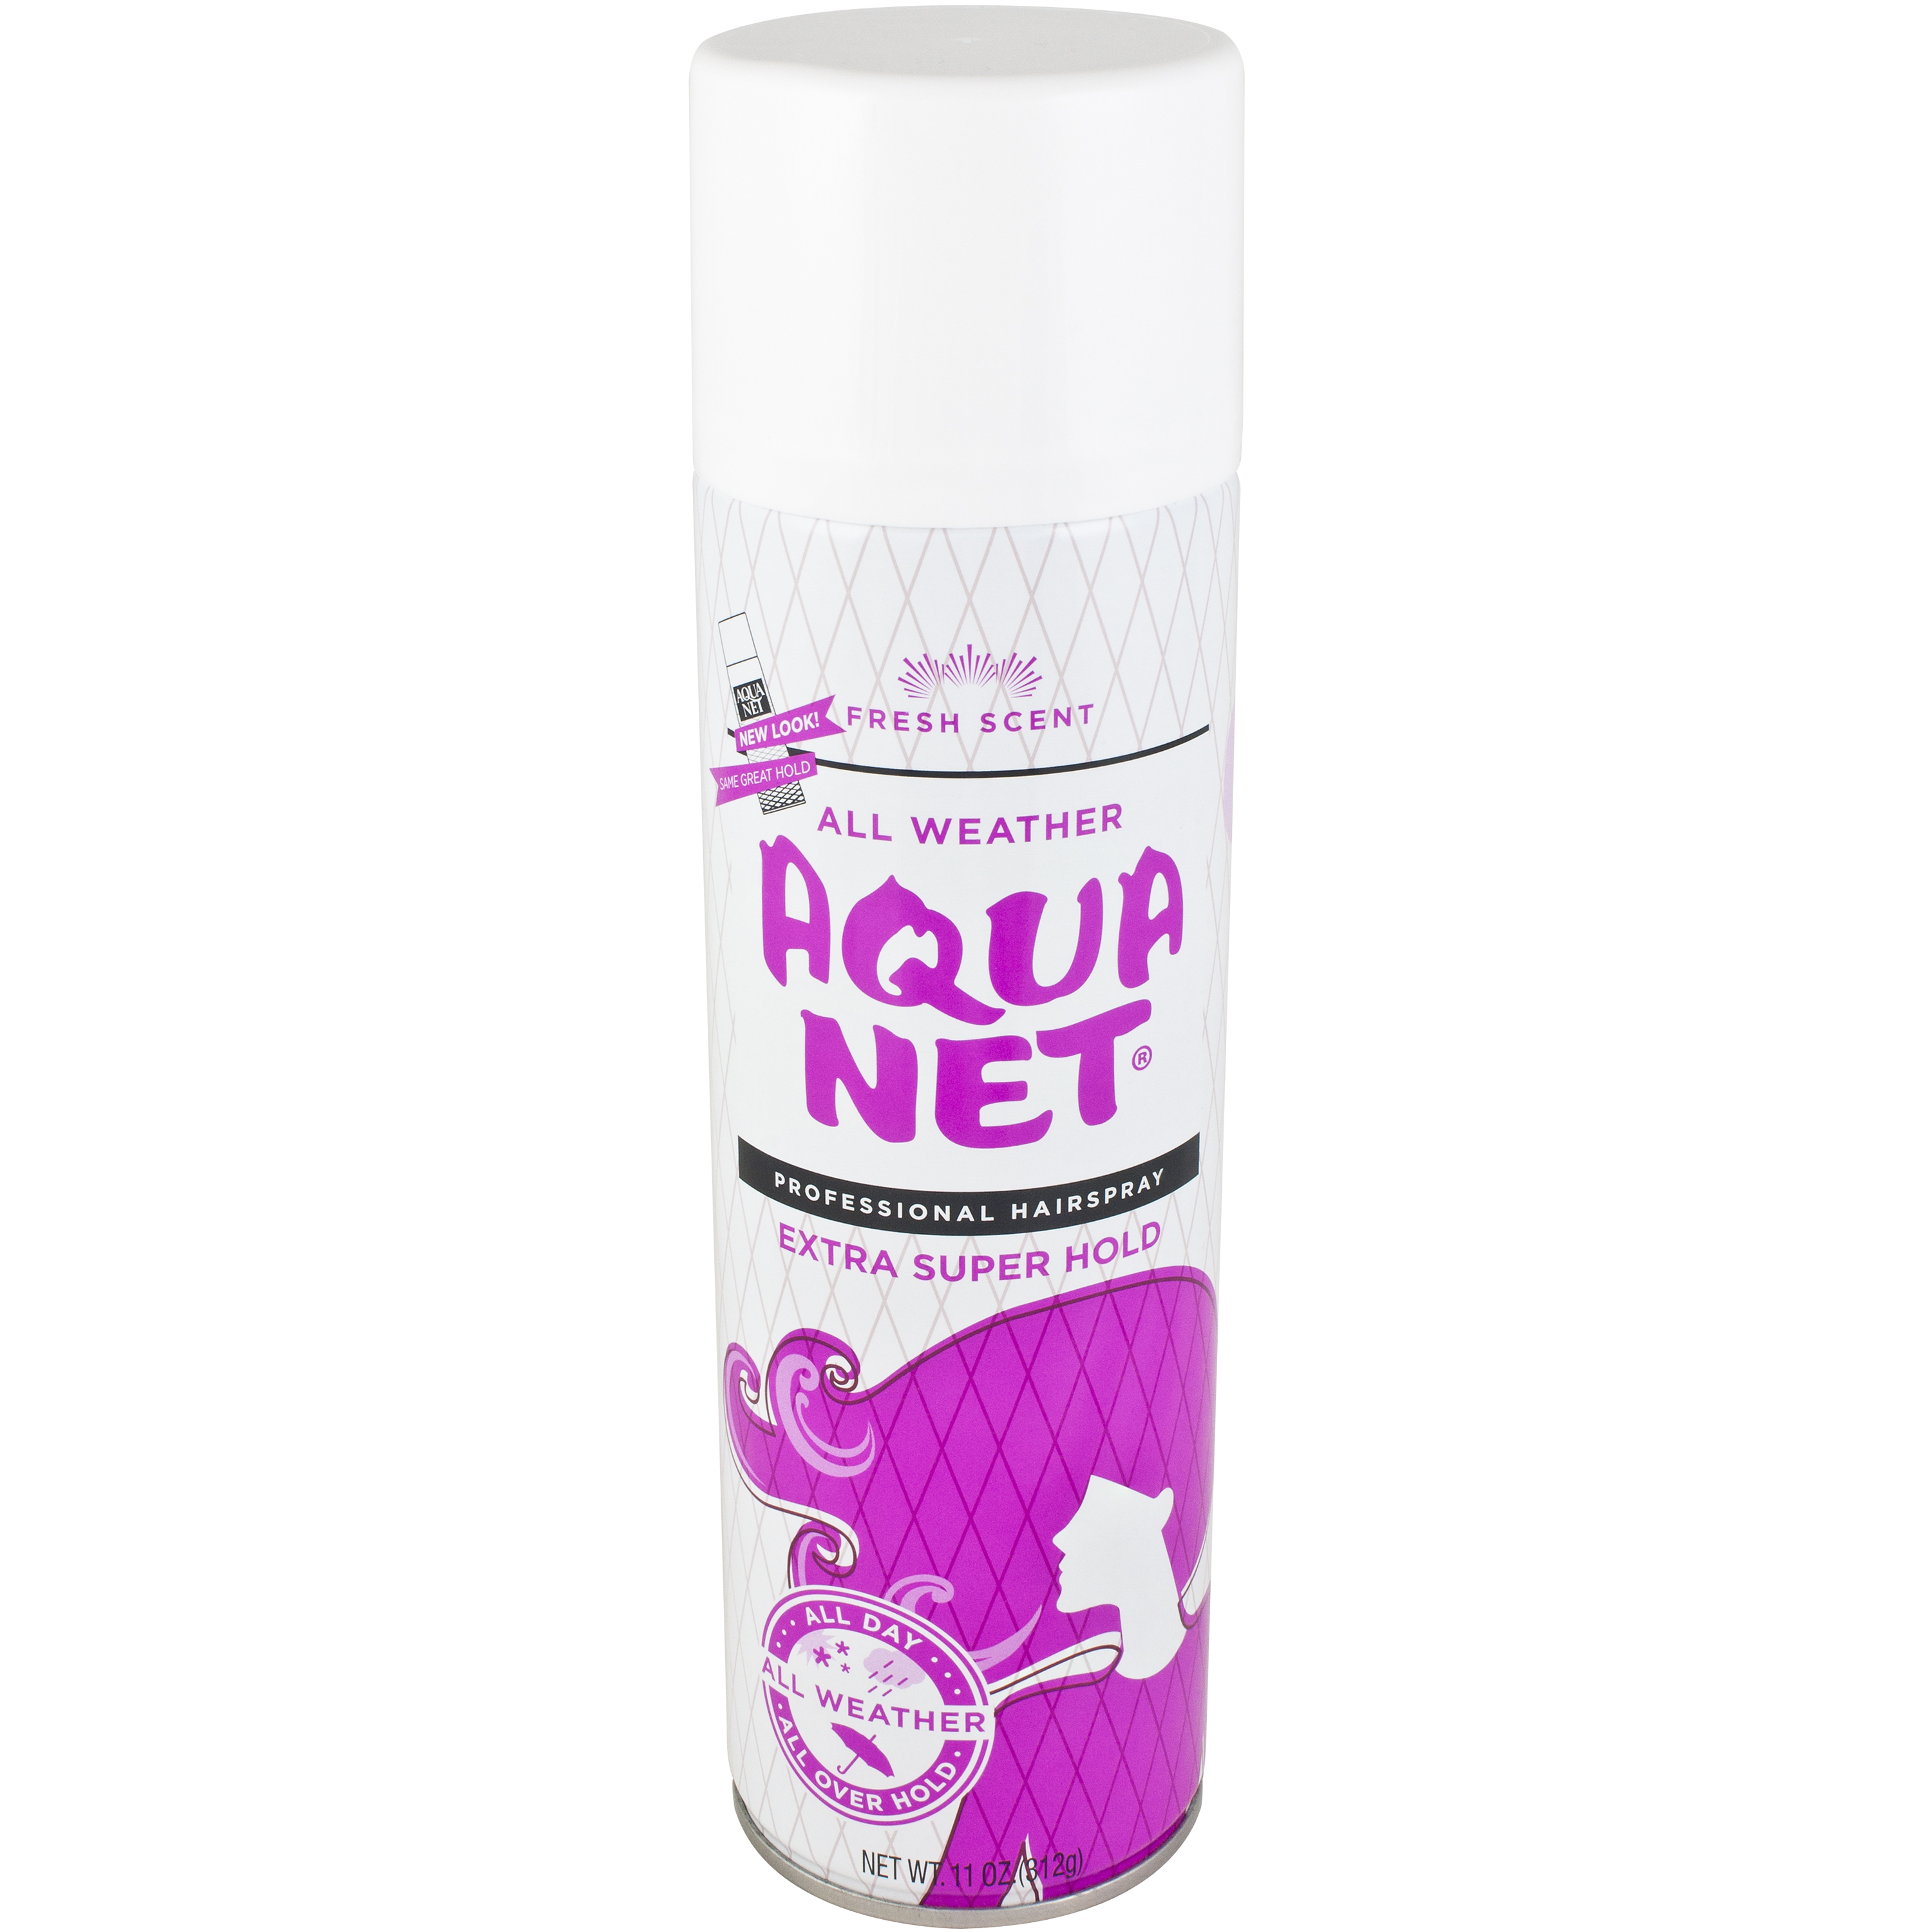 Aqua Net Fresh Fragrance Extra Super Hold Hair Spray, 11 oz